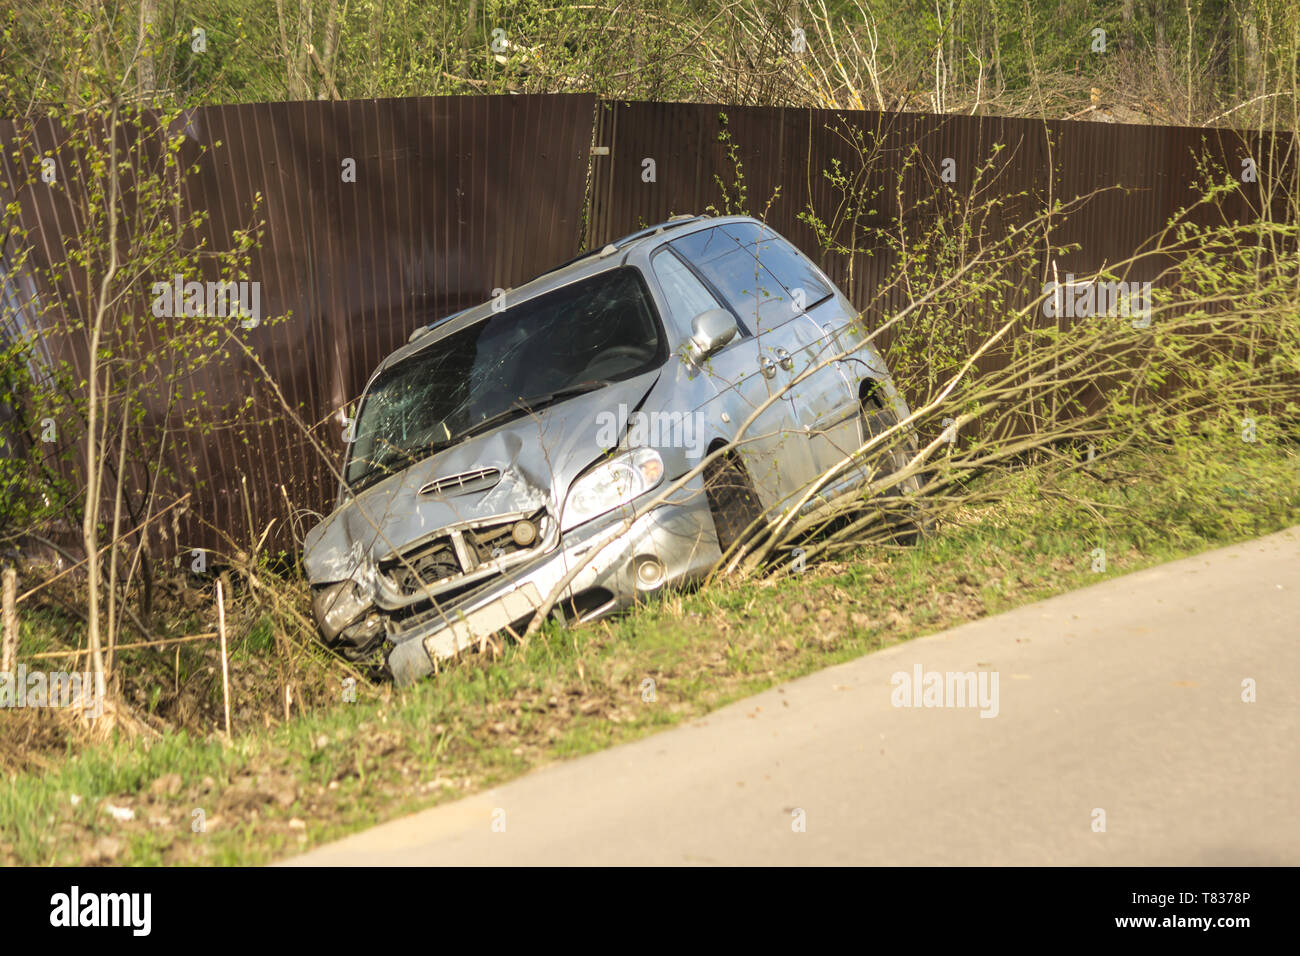 Car accident on a country road. The car is broken in front, slid into a ditch and damaged a metal fence. - Stock Image